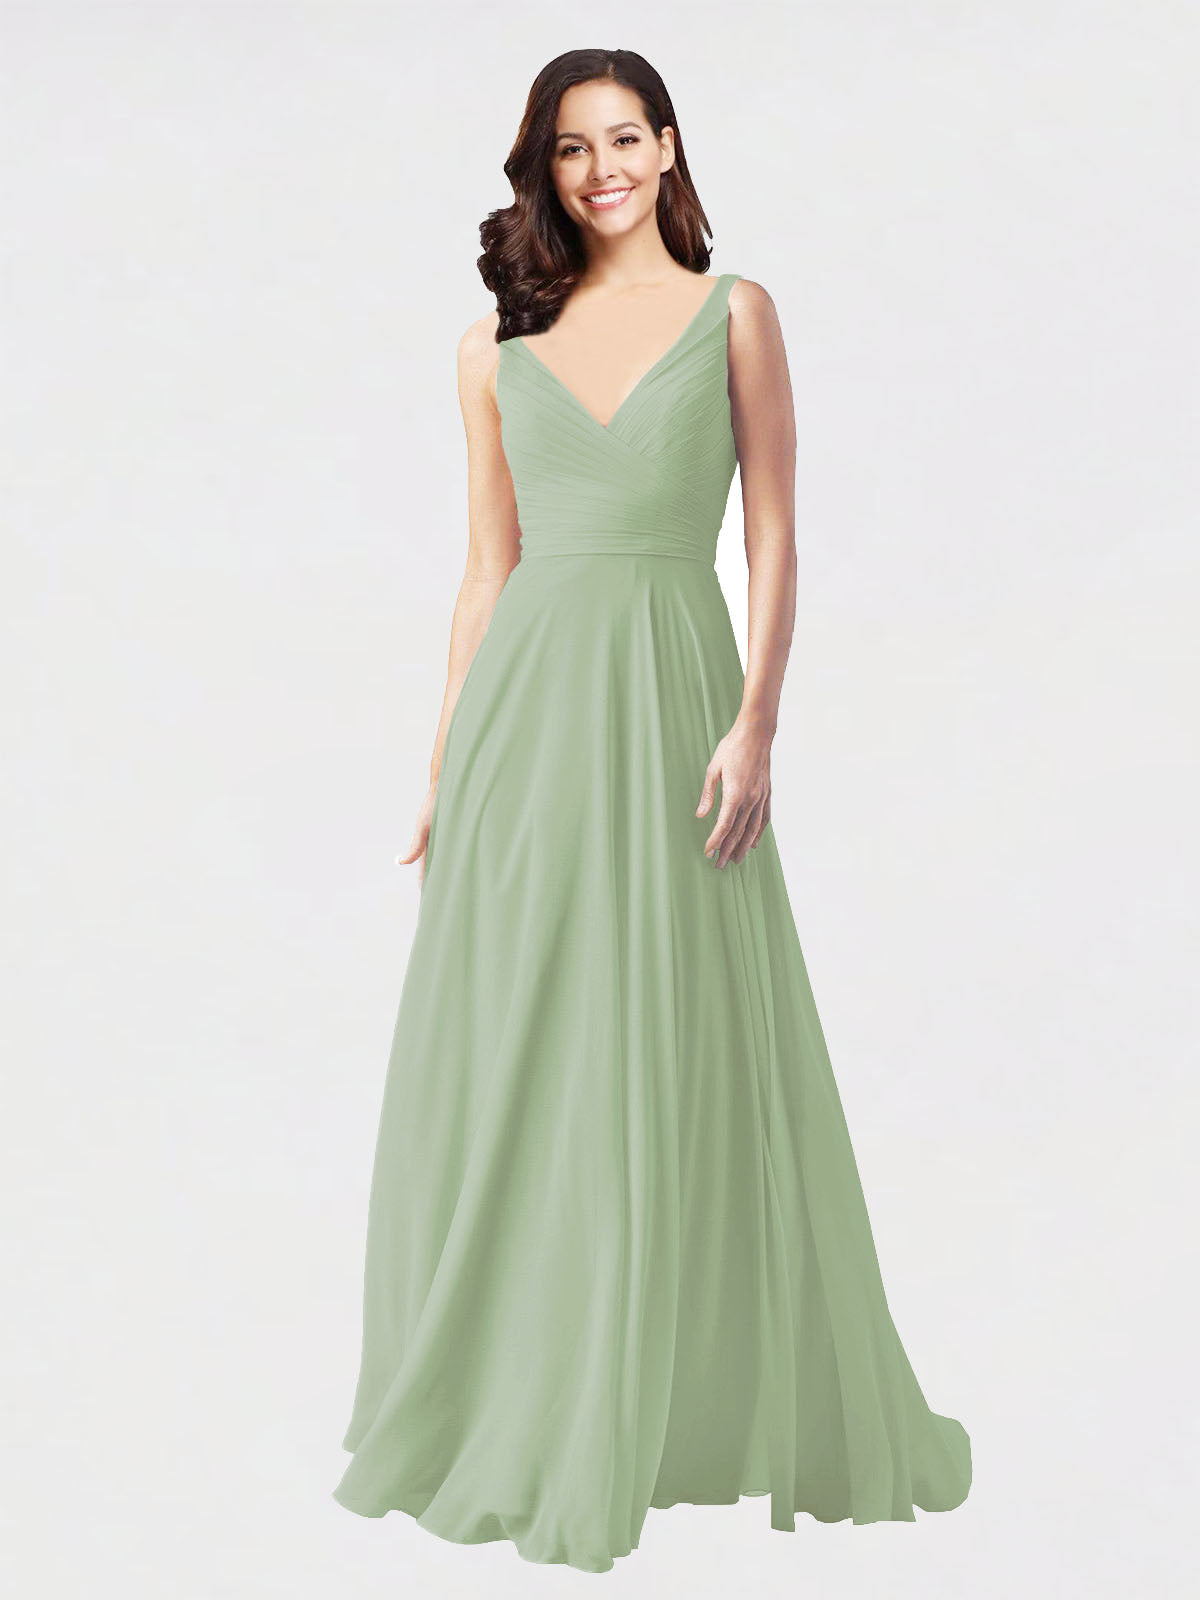 Long A-Line V-Neck Sleeveless Smoke Green Chiffon Bridesmaid Dress Bernice